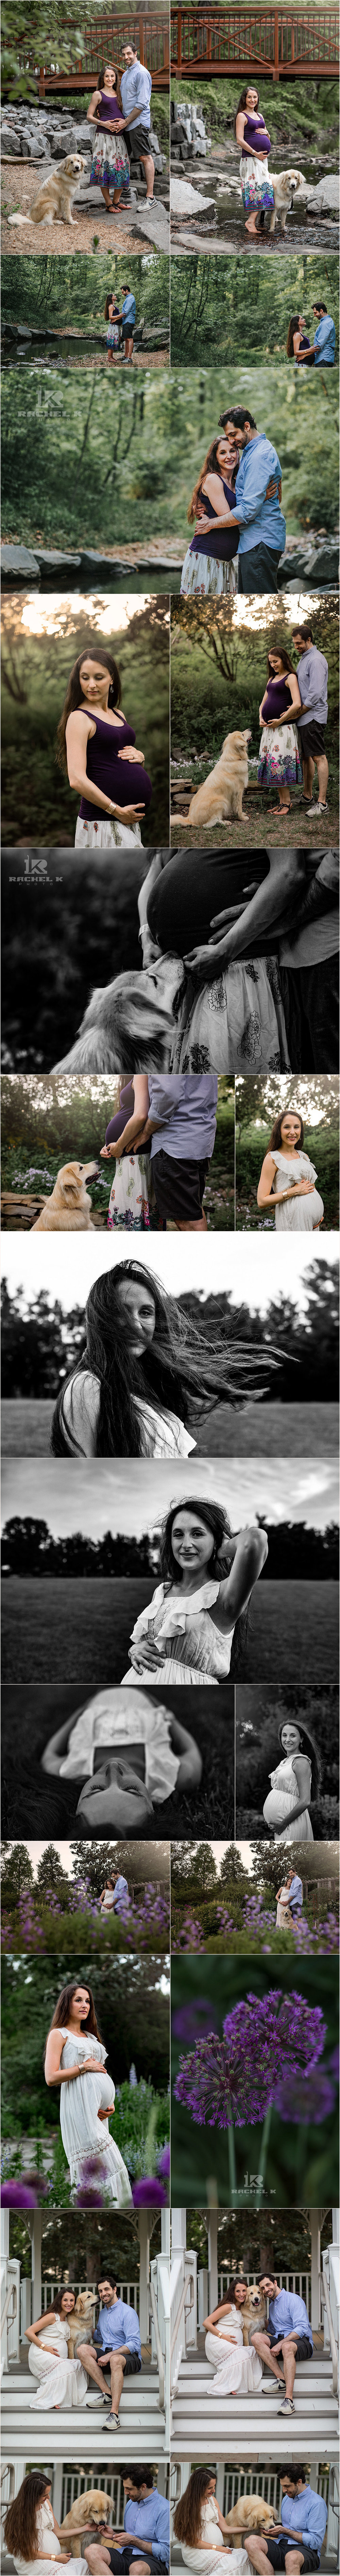 Alexandria Virginia maternity session with dog by Rachel K Photo